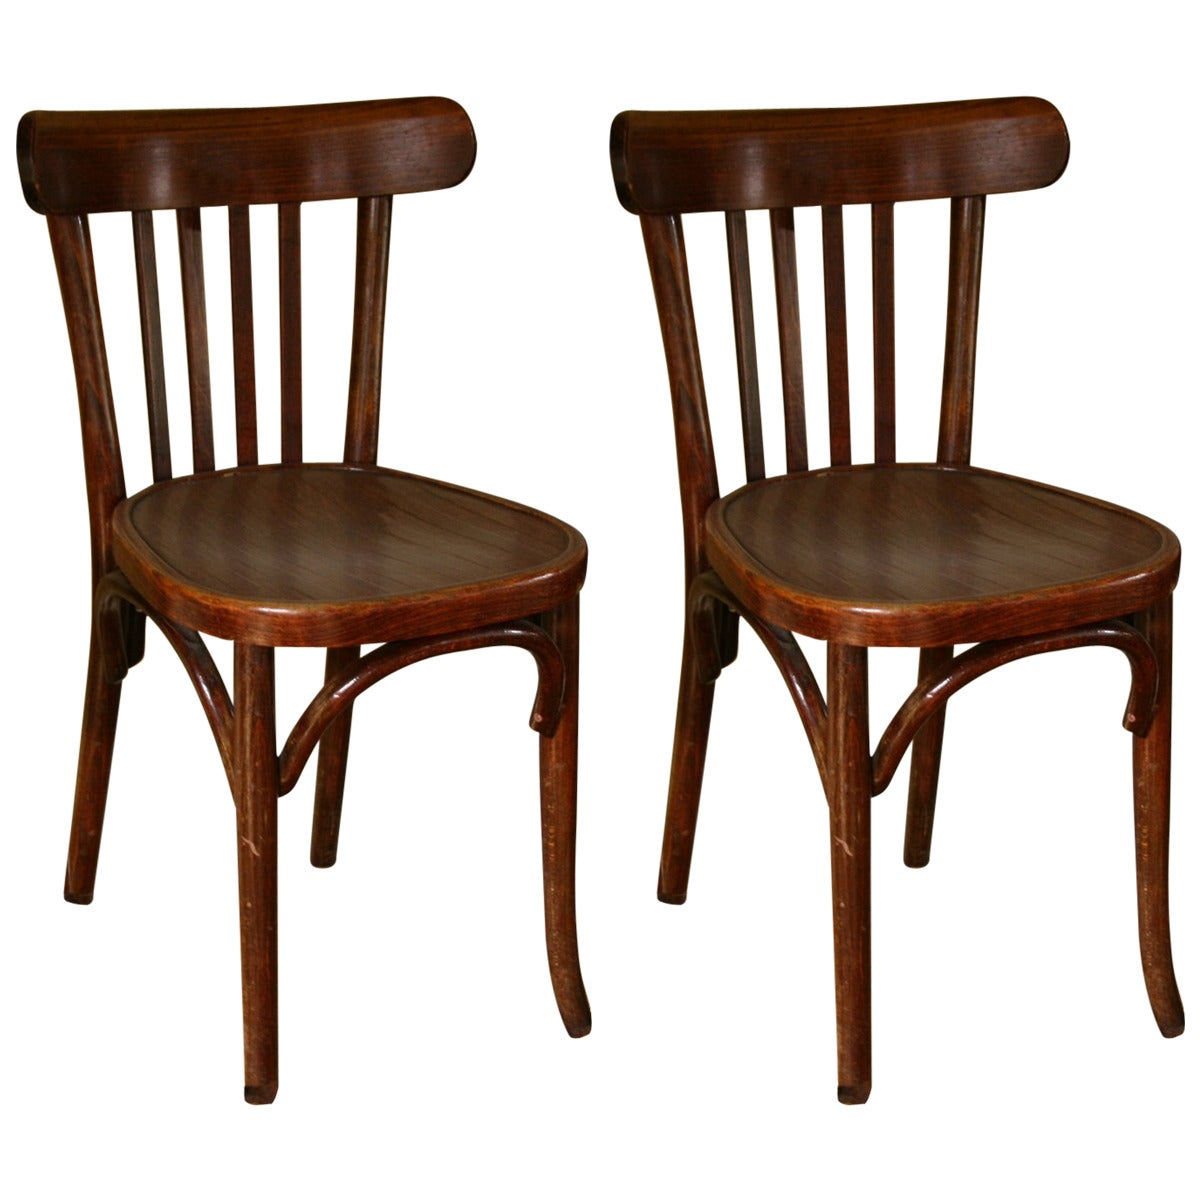 French Bistro Chair Two Early 1900s French Bistro Chairs At 1stdibs